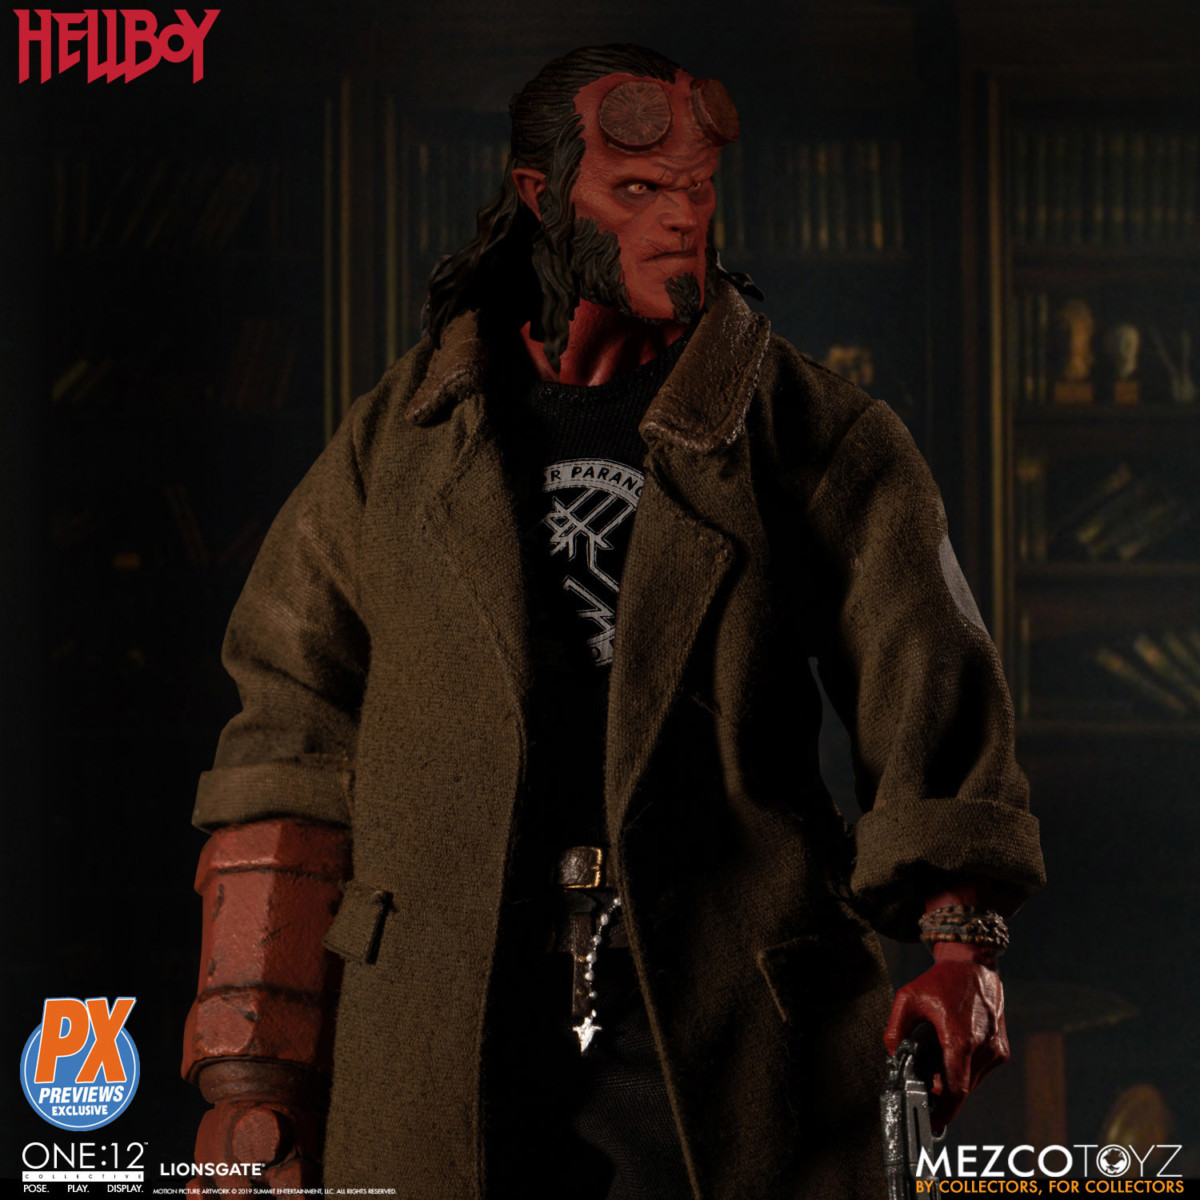 Hellboy gets a One:12 Collective action figure from Mezco Toys